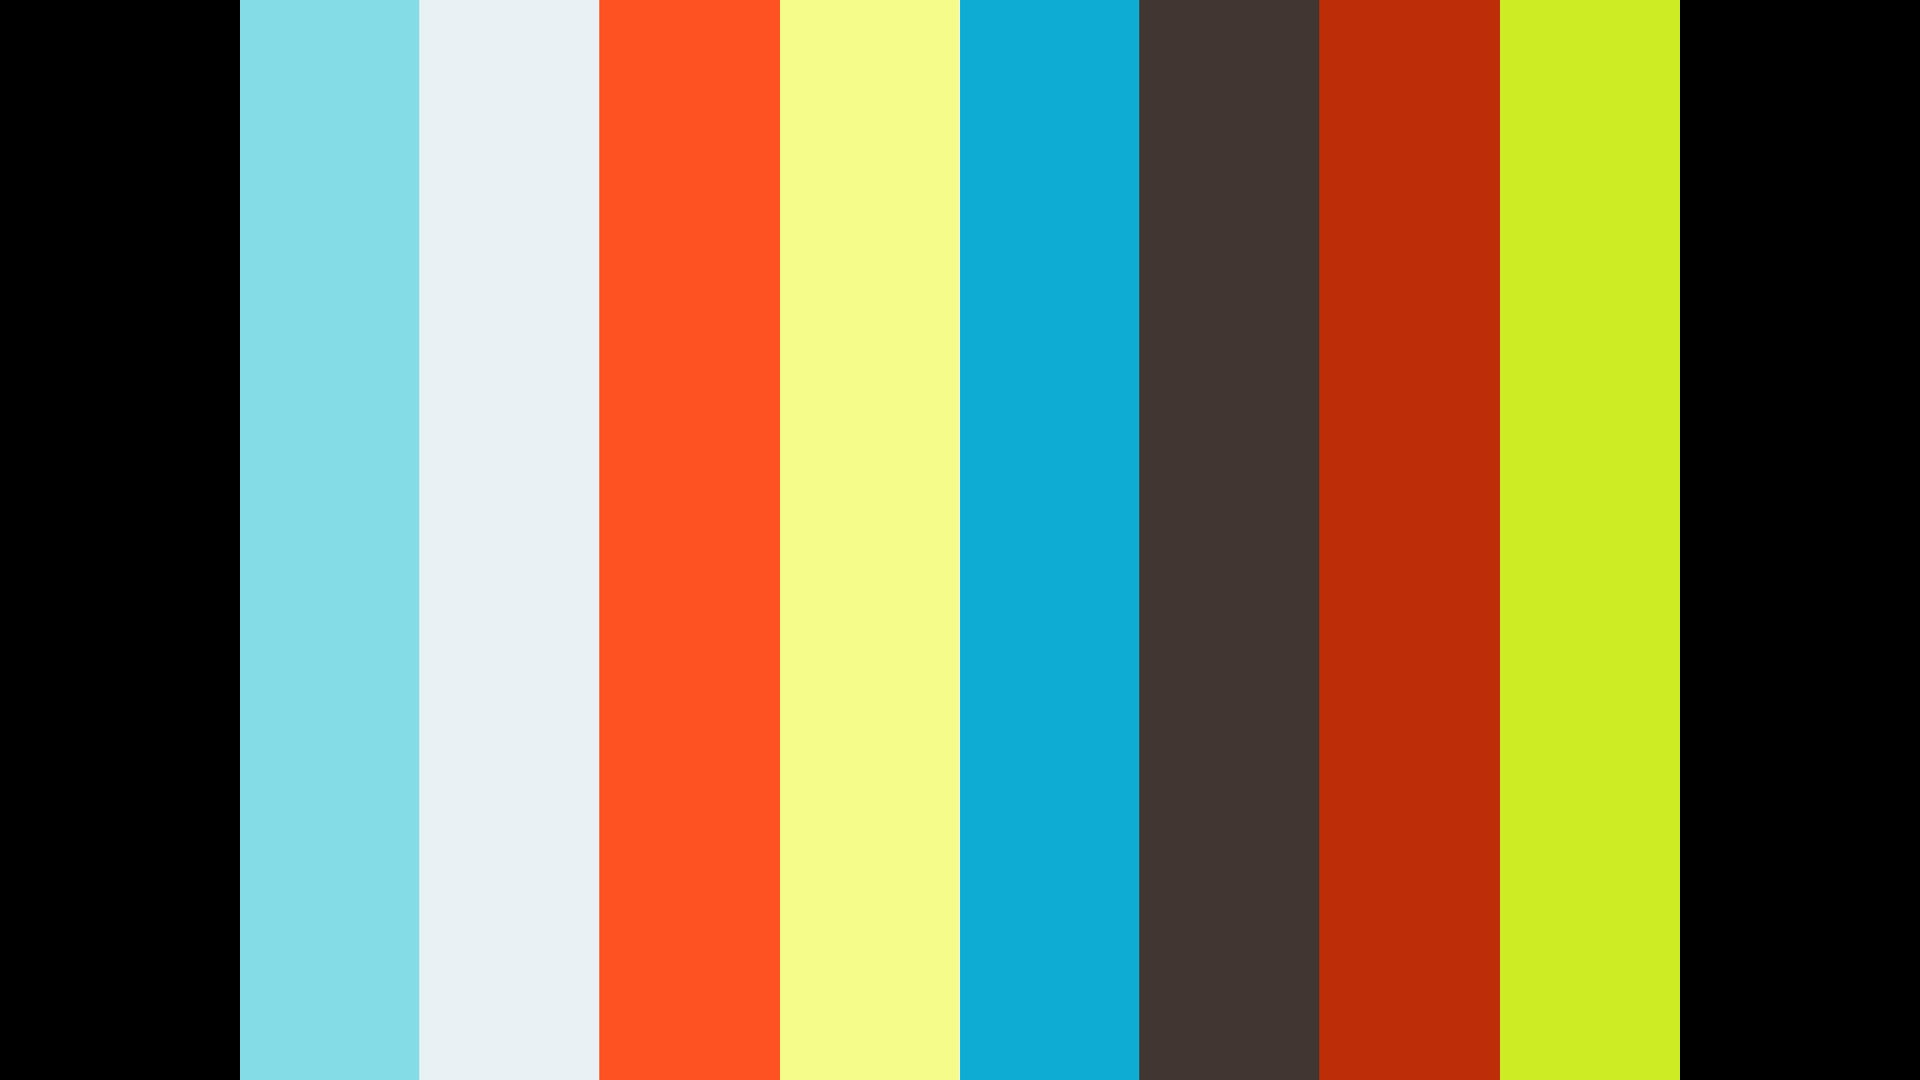 Vvinni Gagnepain's THE BOX